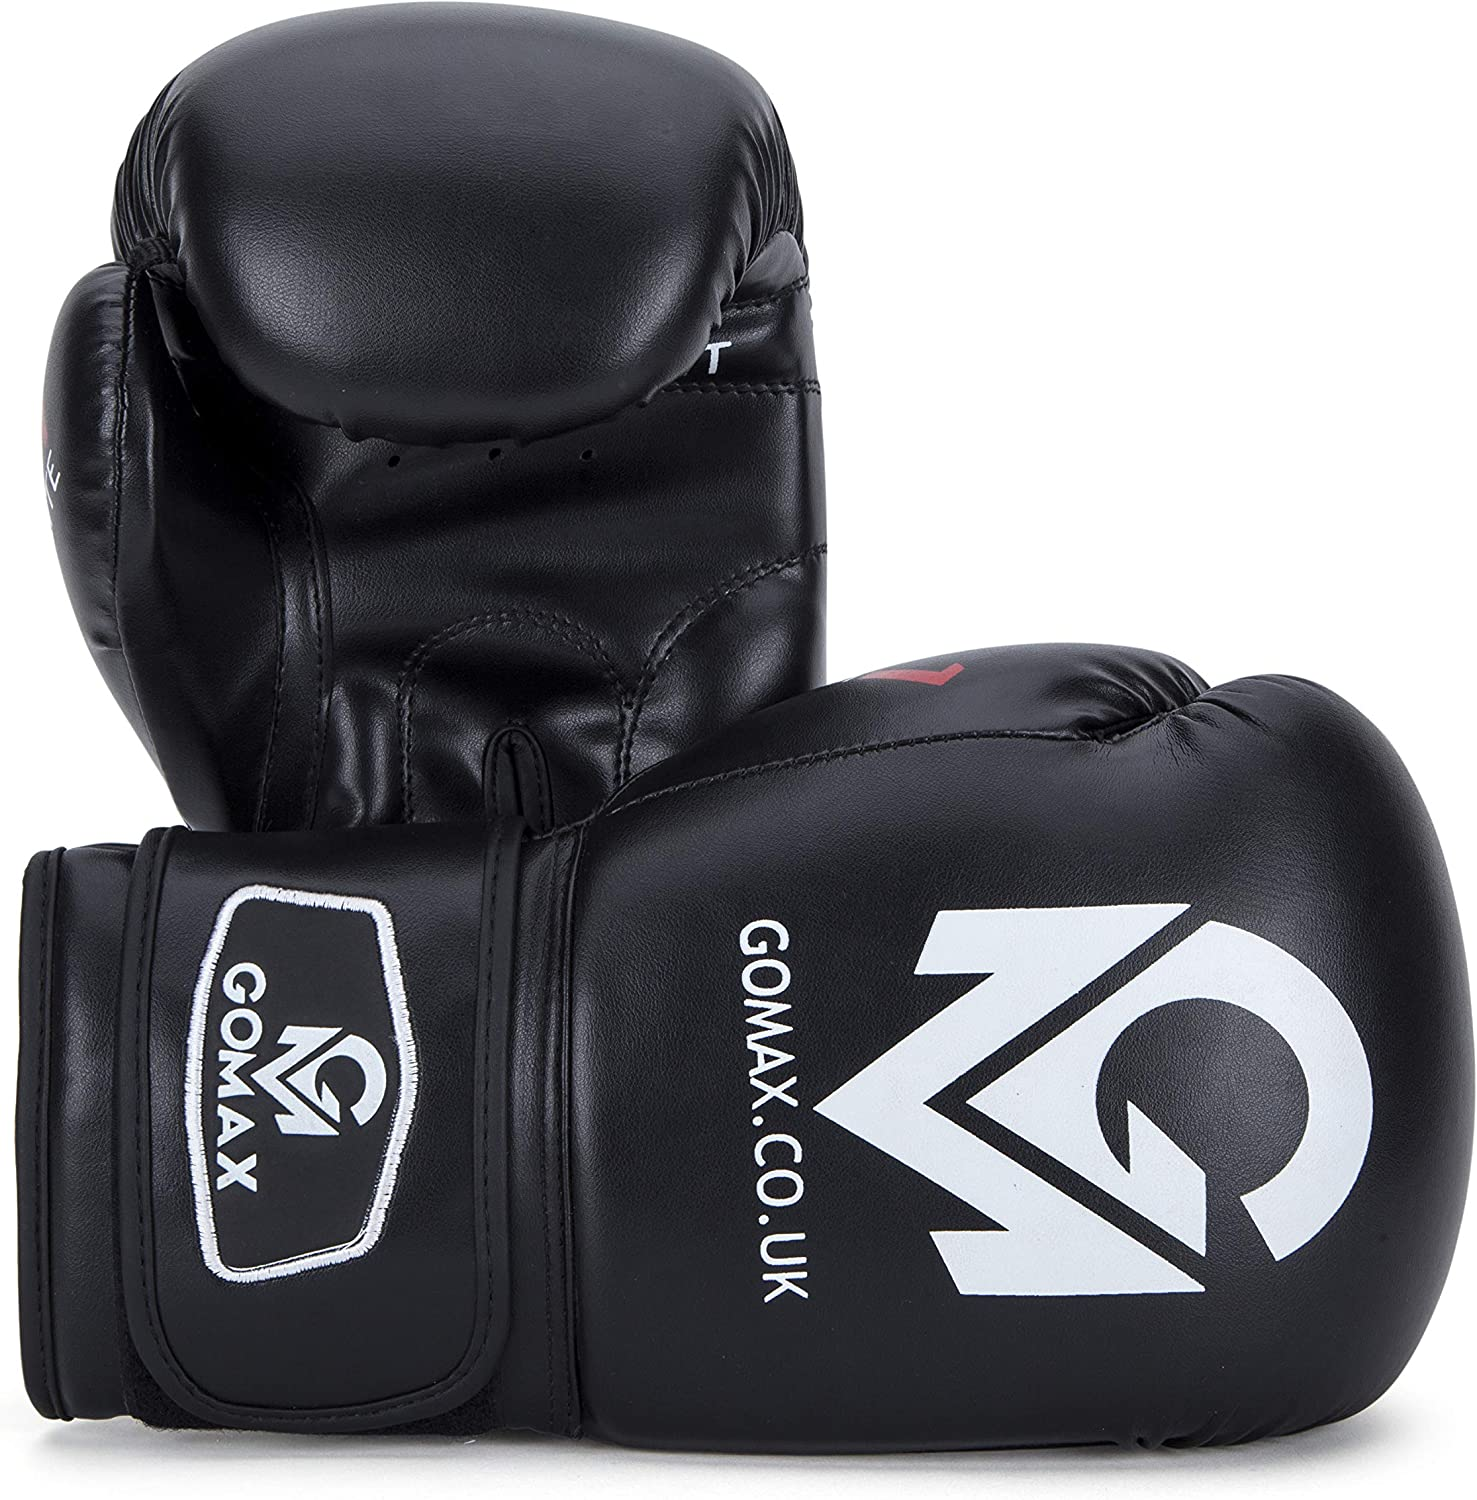 16 oz Boxing Gloves for Training Punching Sparring Punching Bag Boxing Bag Gloves Punch Bag Mitts Muay Thai Kickboxing MMA Martial Arts Workout Gloves 12 8 10 GoMax Leather Boxing Gloves 6 14